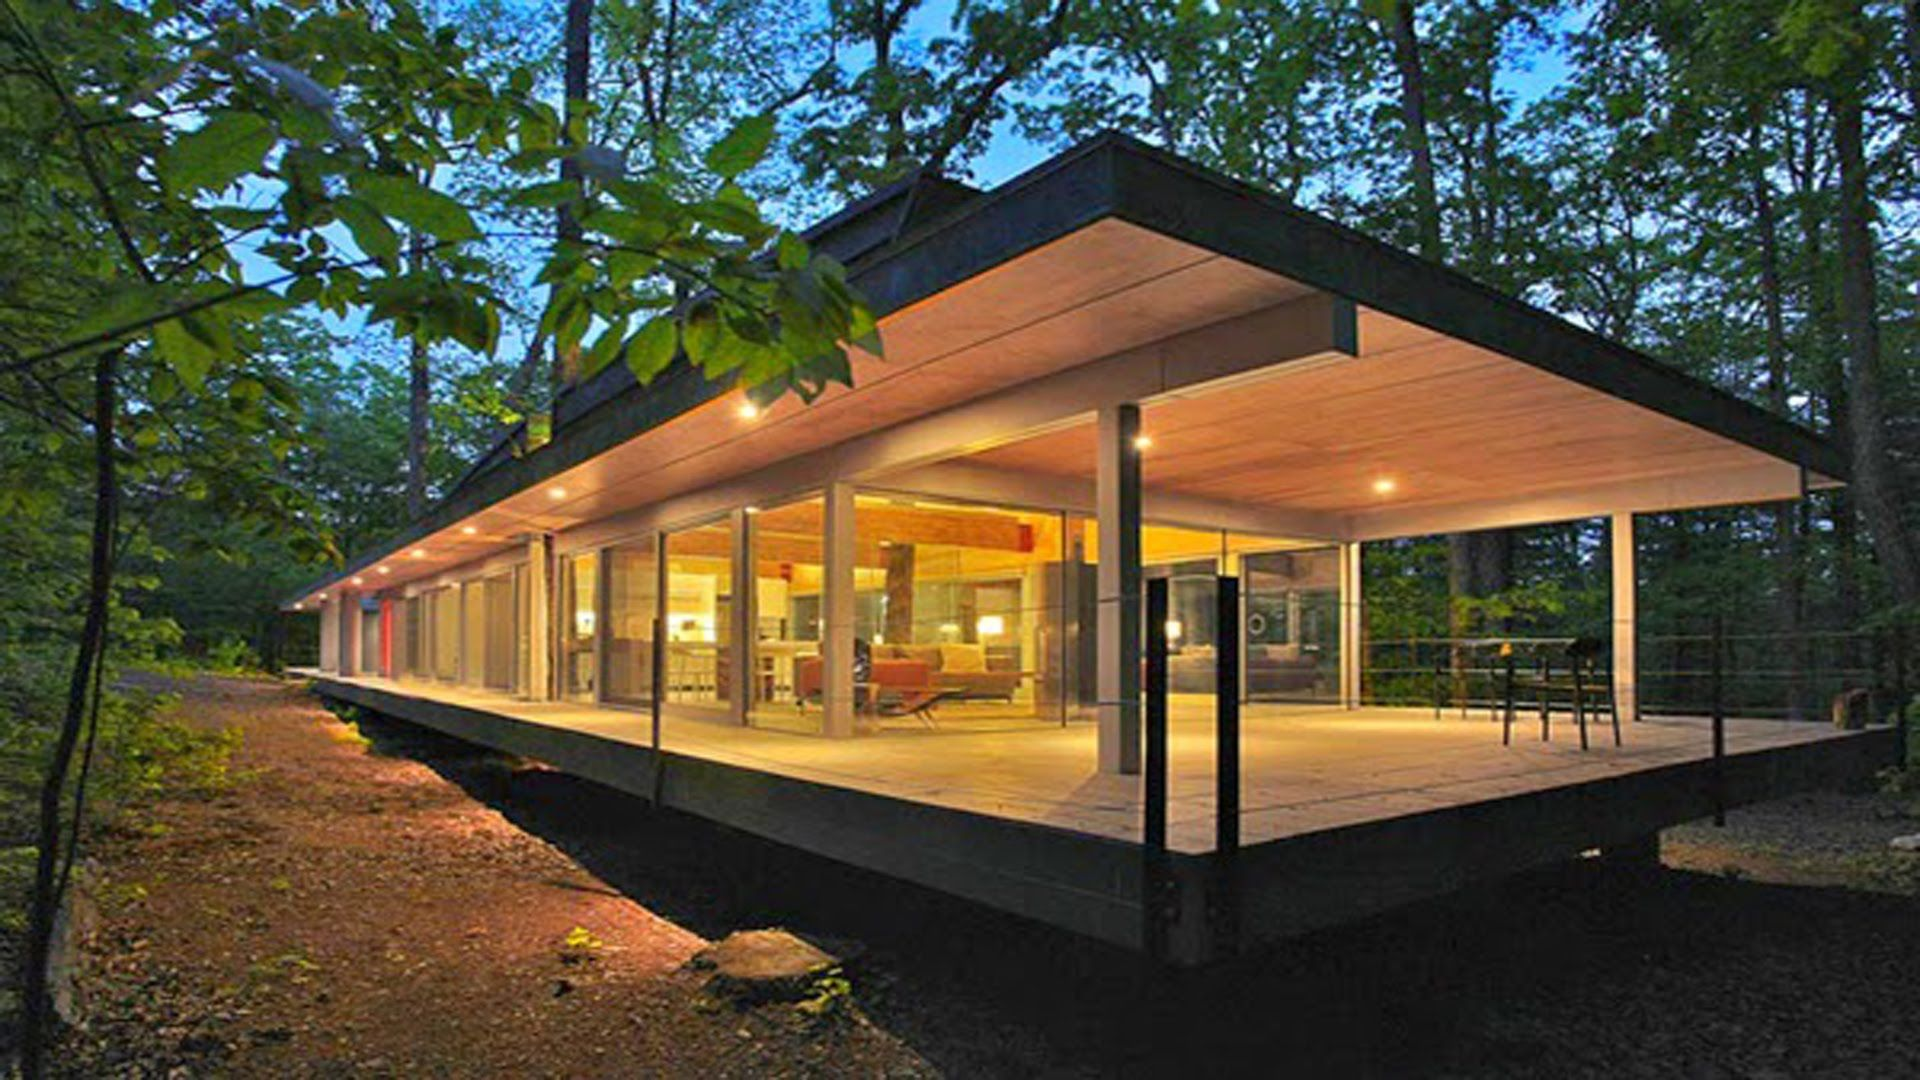 modern tree house plans. Home Of The Week: A Modern Treehouse In West Virginia Mountains Tree House Plans M